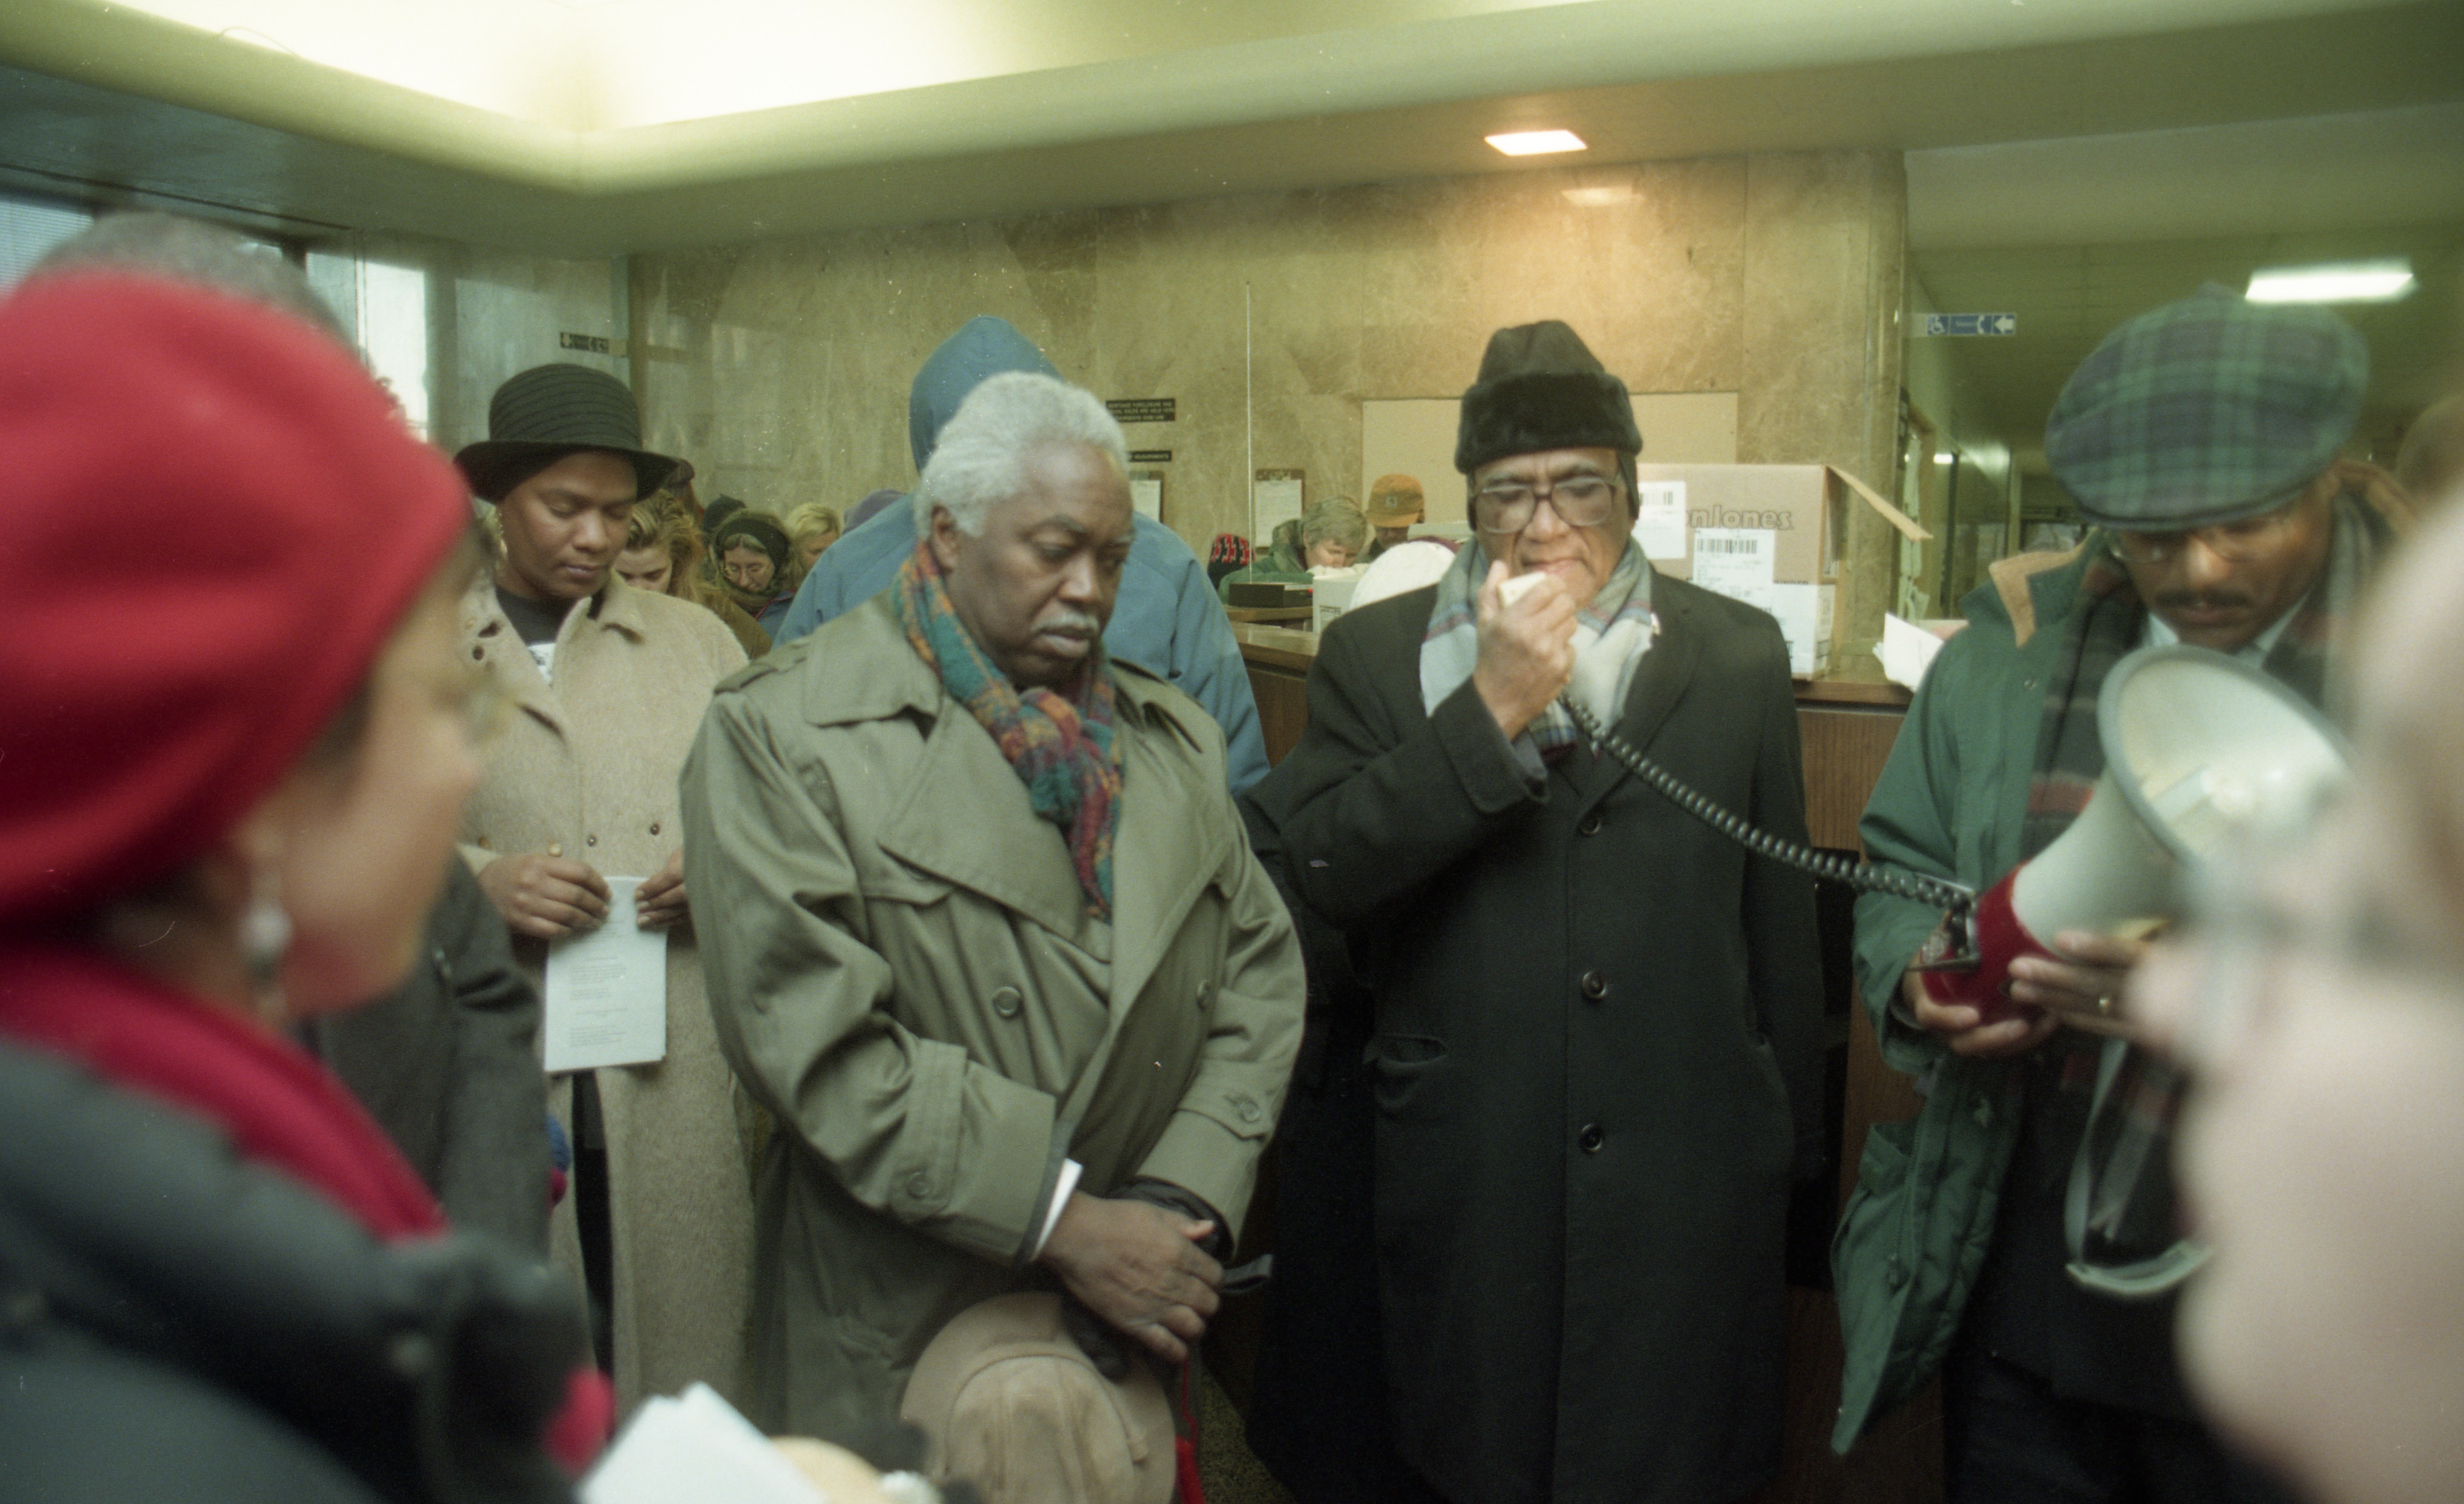 Second Baptist Church Annual Unity March To Honor Dr. Martin Luther King Jr. Gets Under Way, January 1997 image